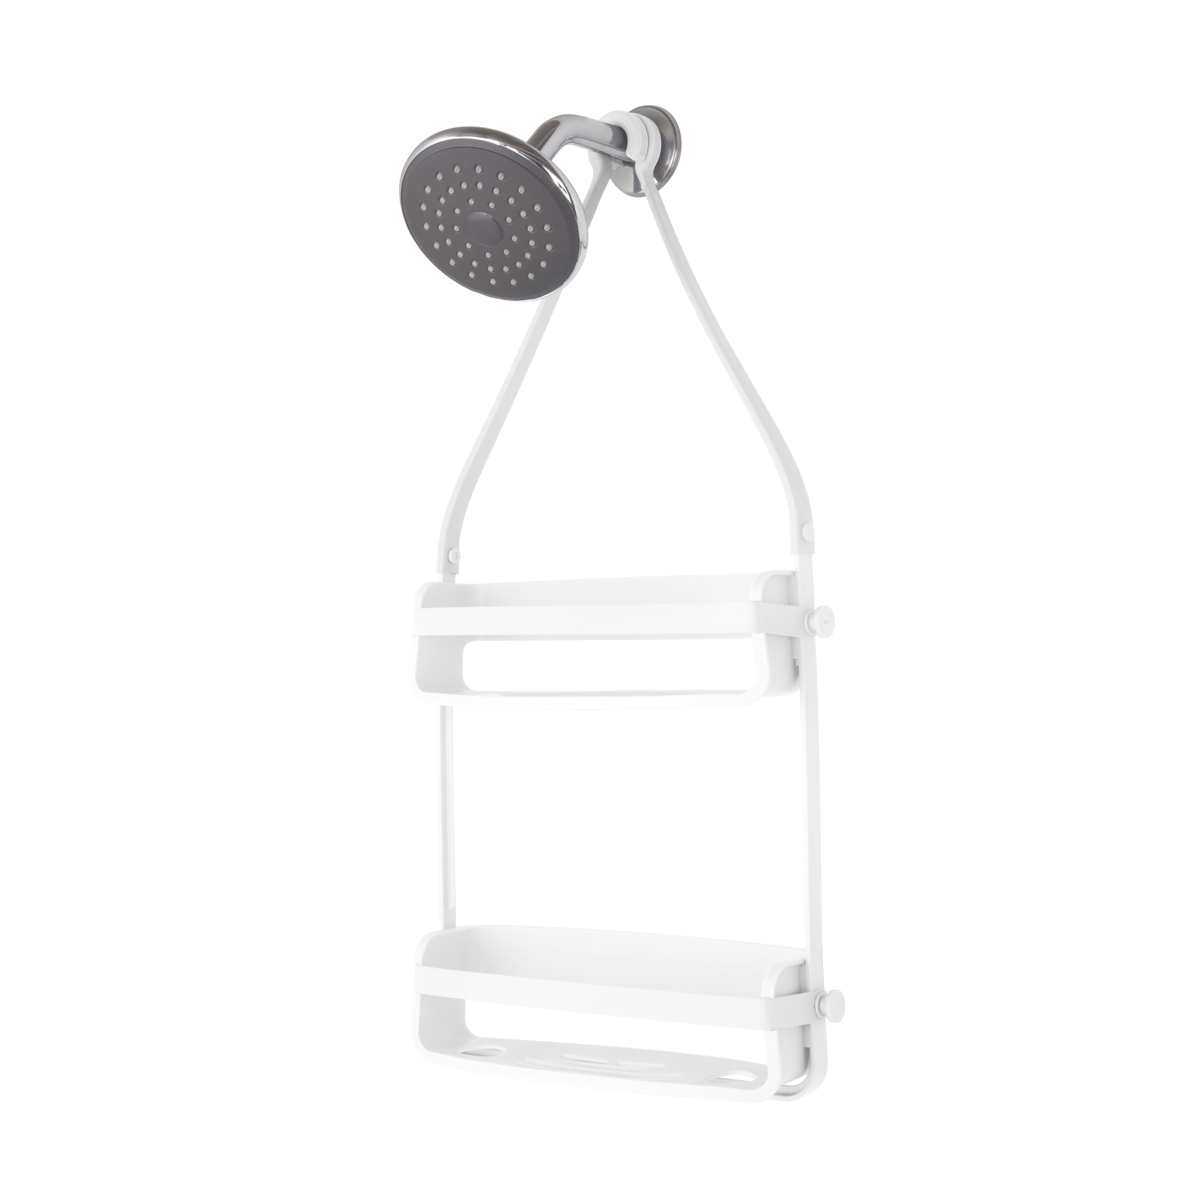 Umbra Flex Shower Caddy White 9.5 x 31.8 x 64.8 cm